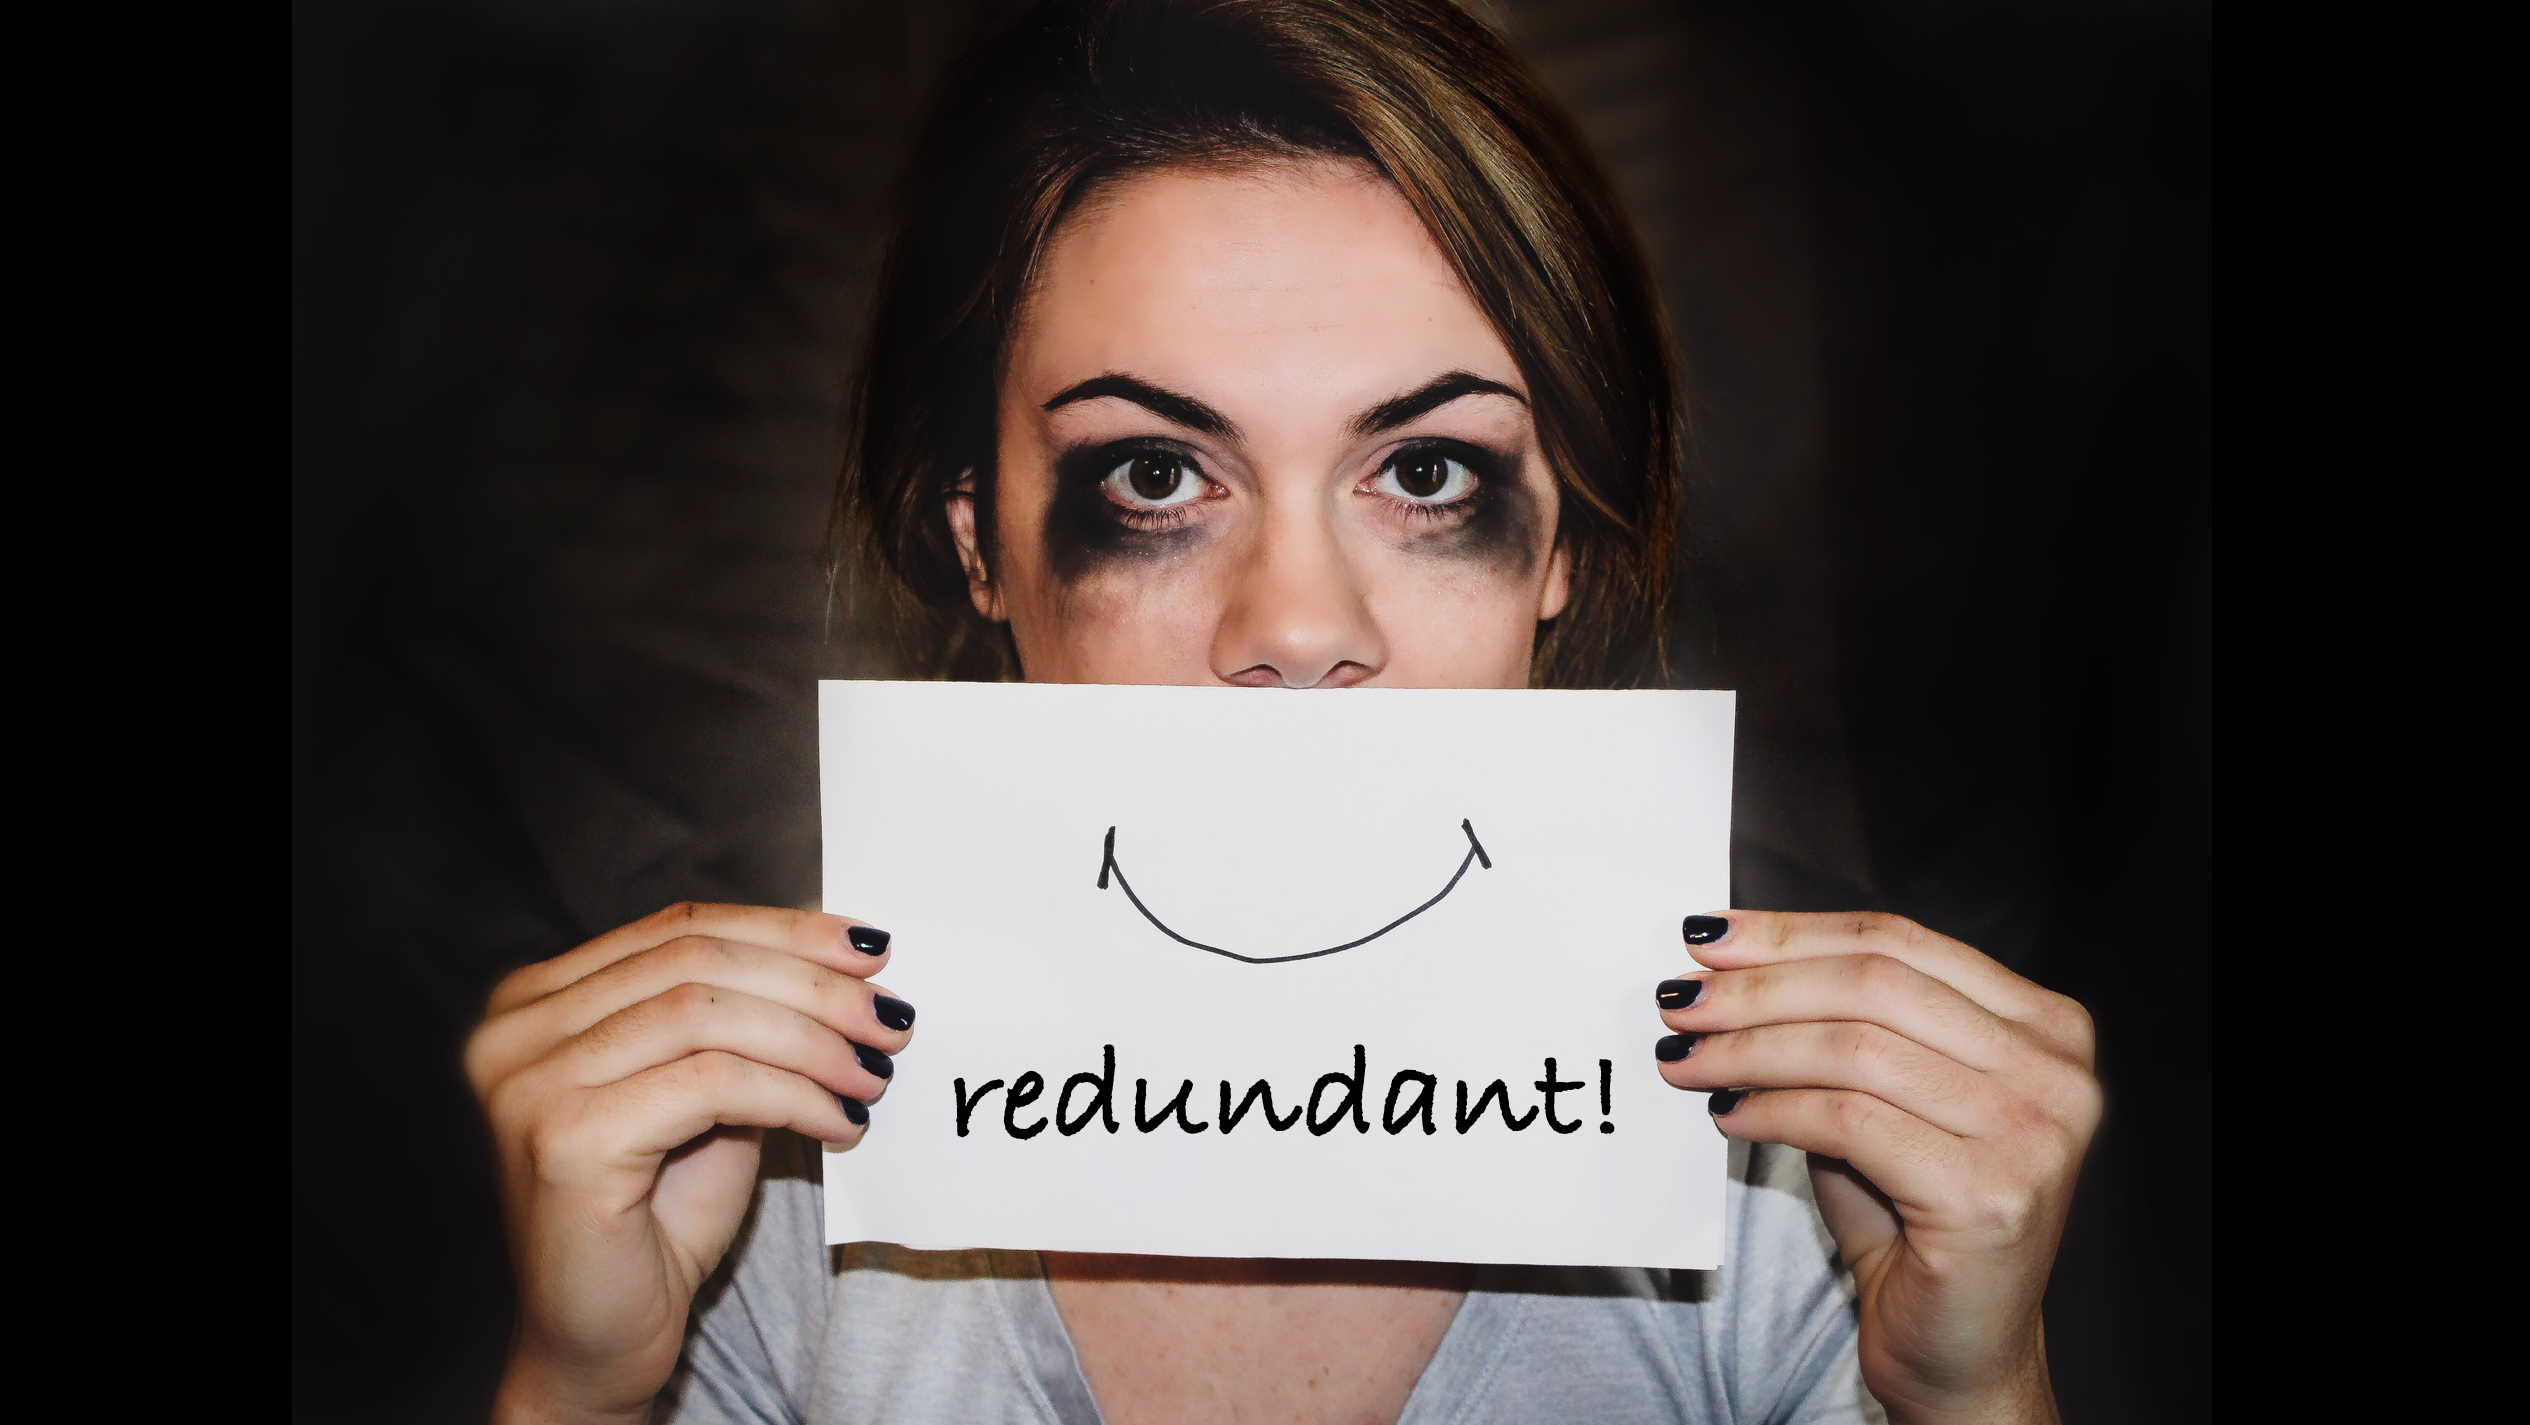 Redundant Smile sydney-sims-519706-unsplash